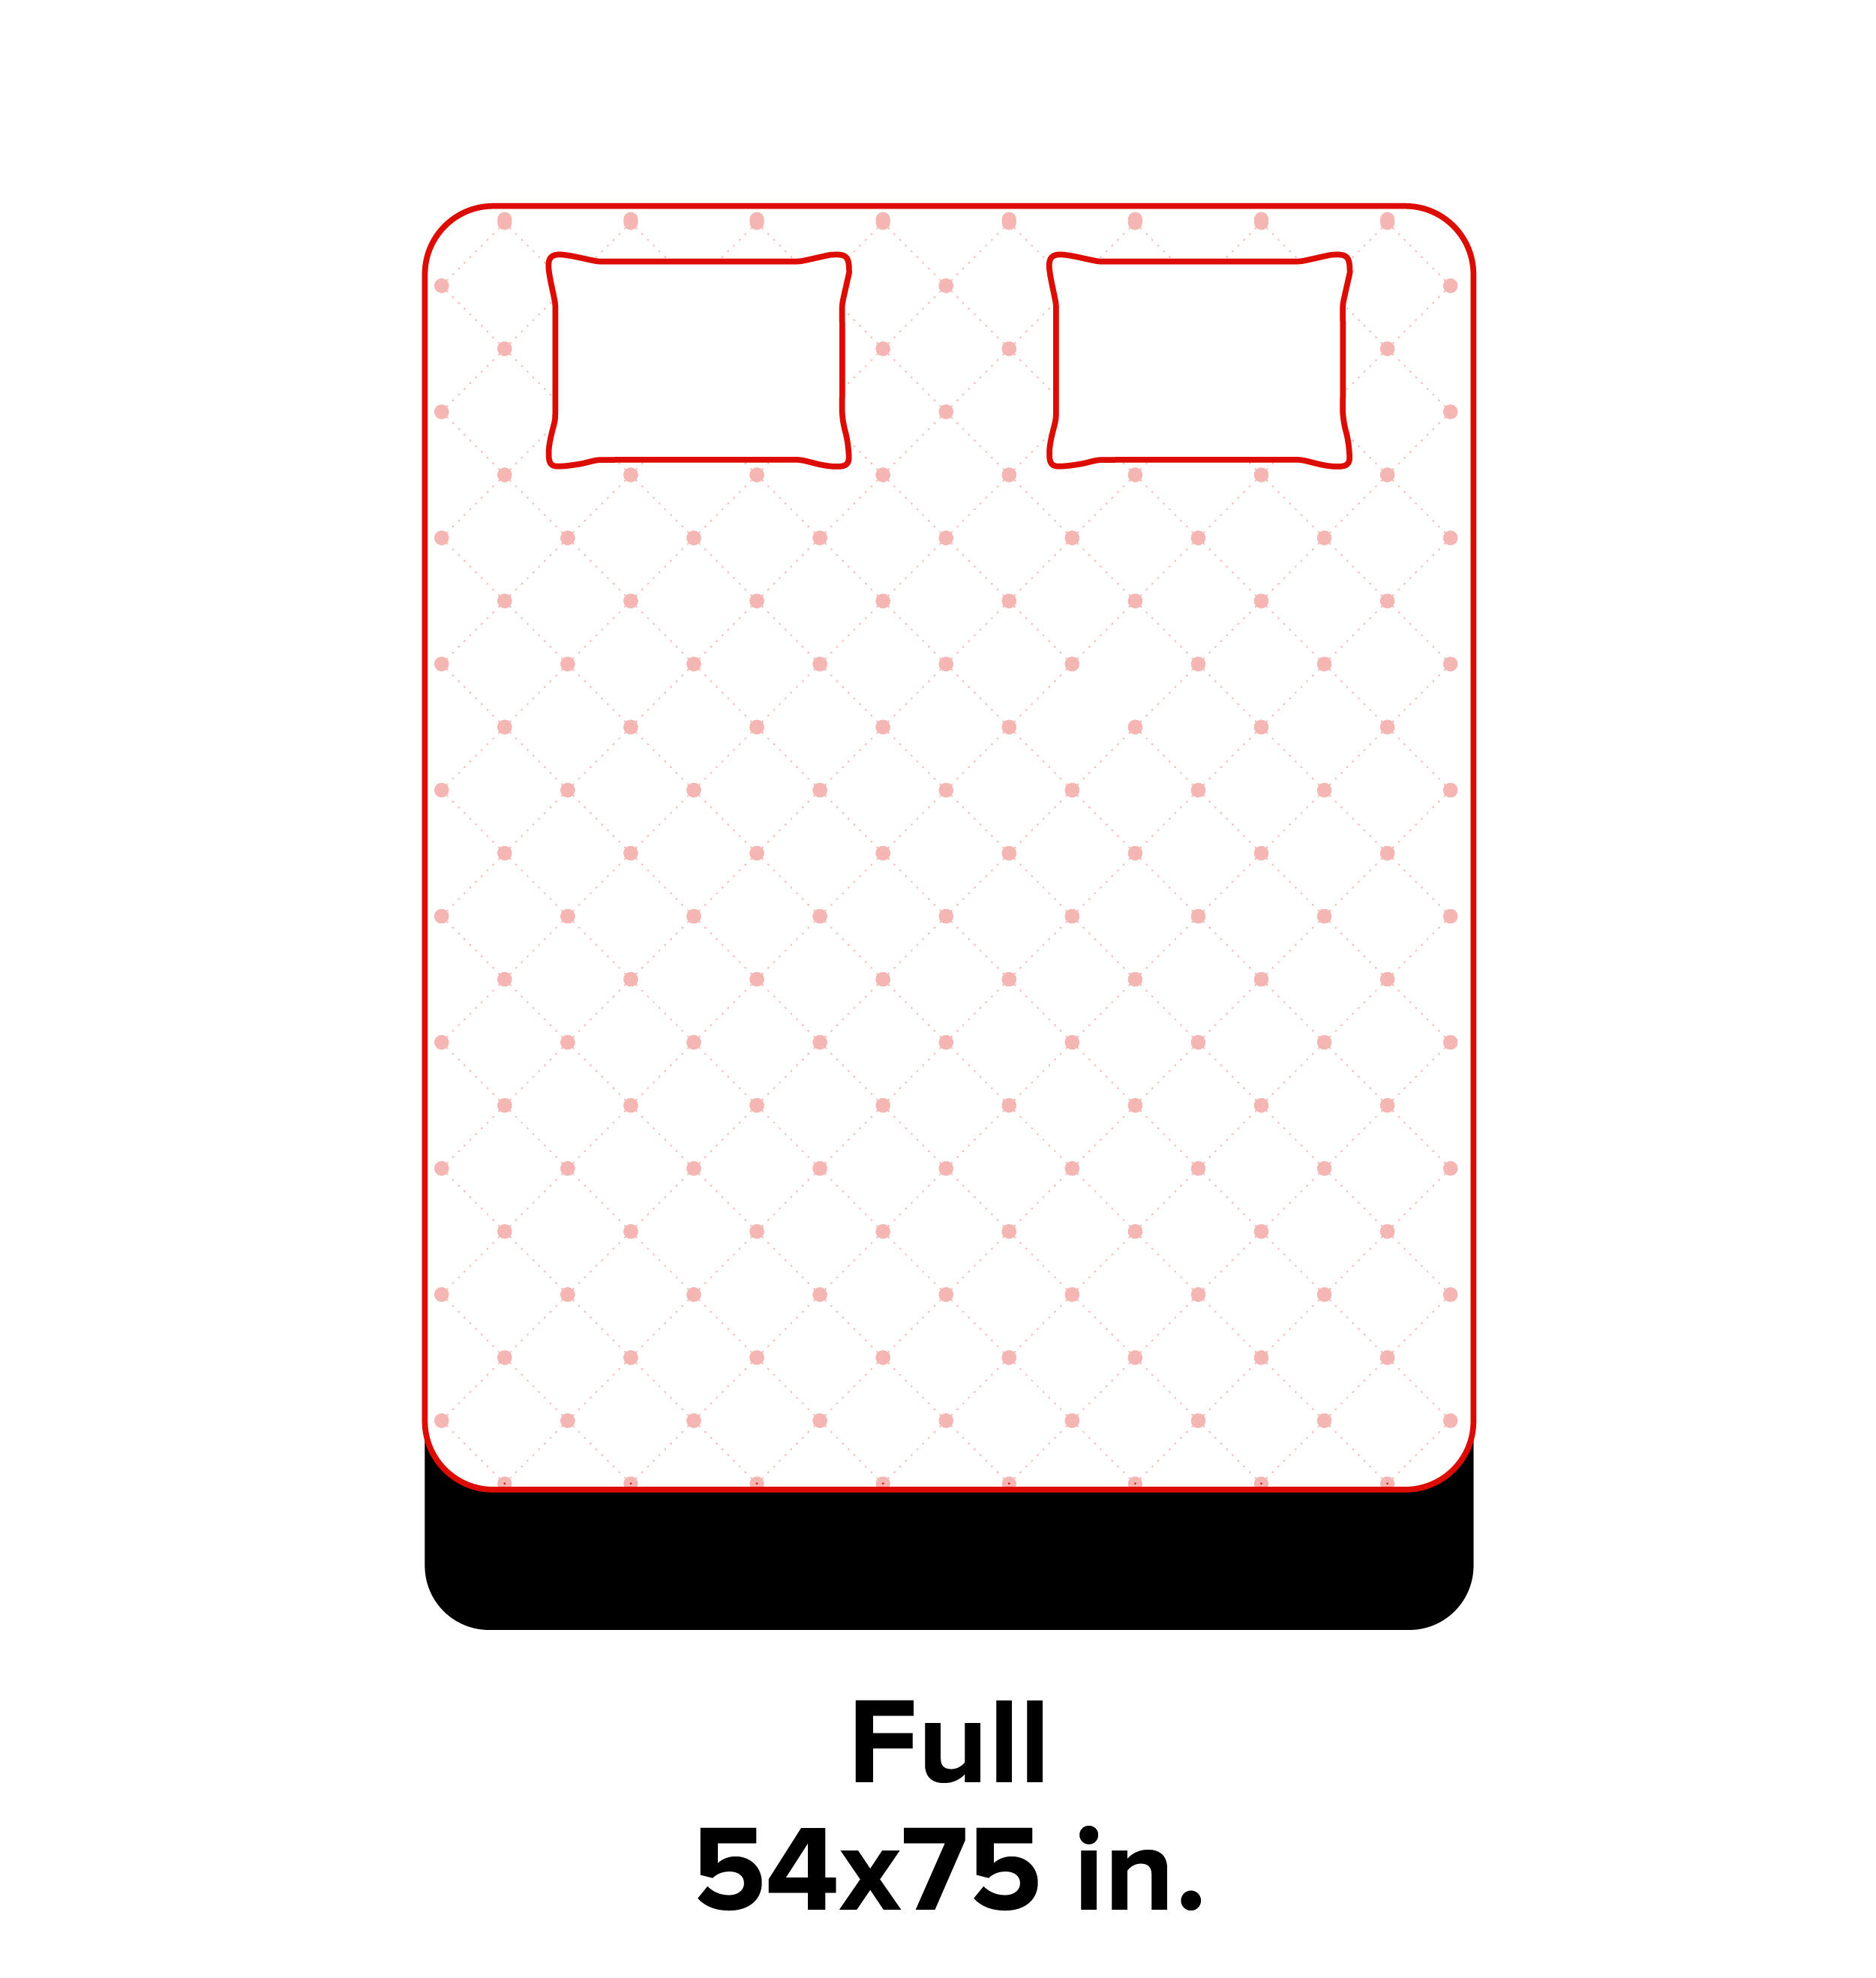 mattress-size-guide-graphic-cnet-full